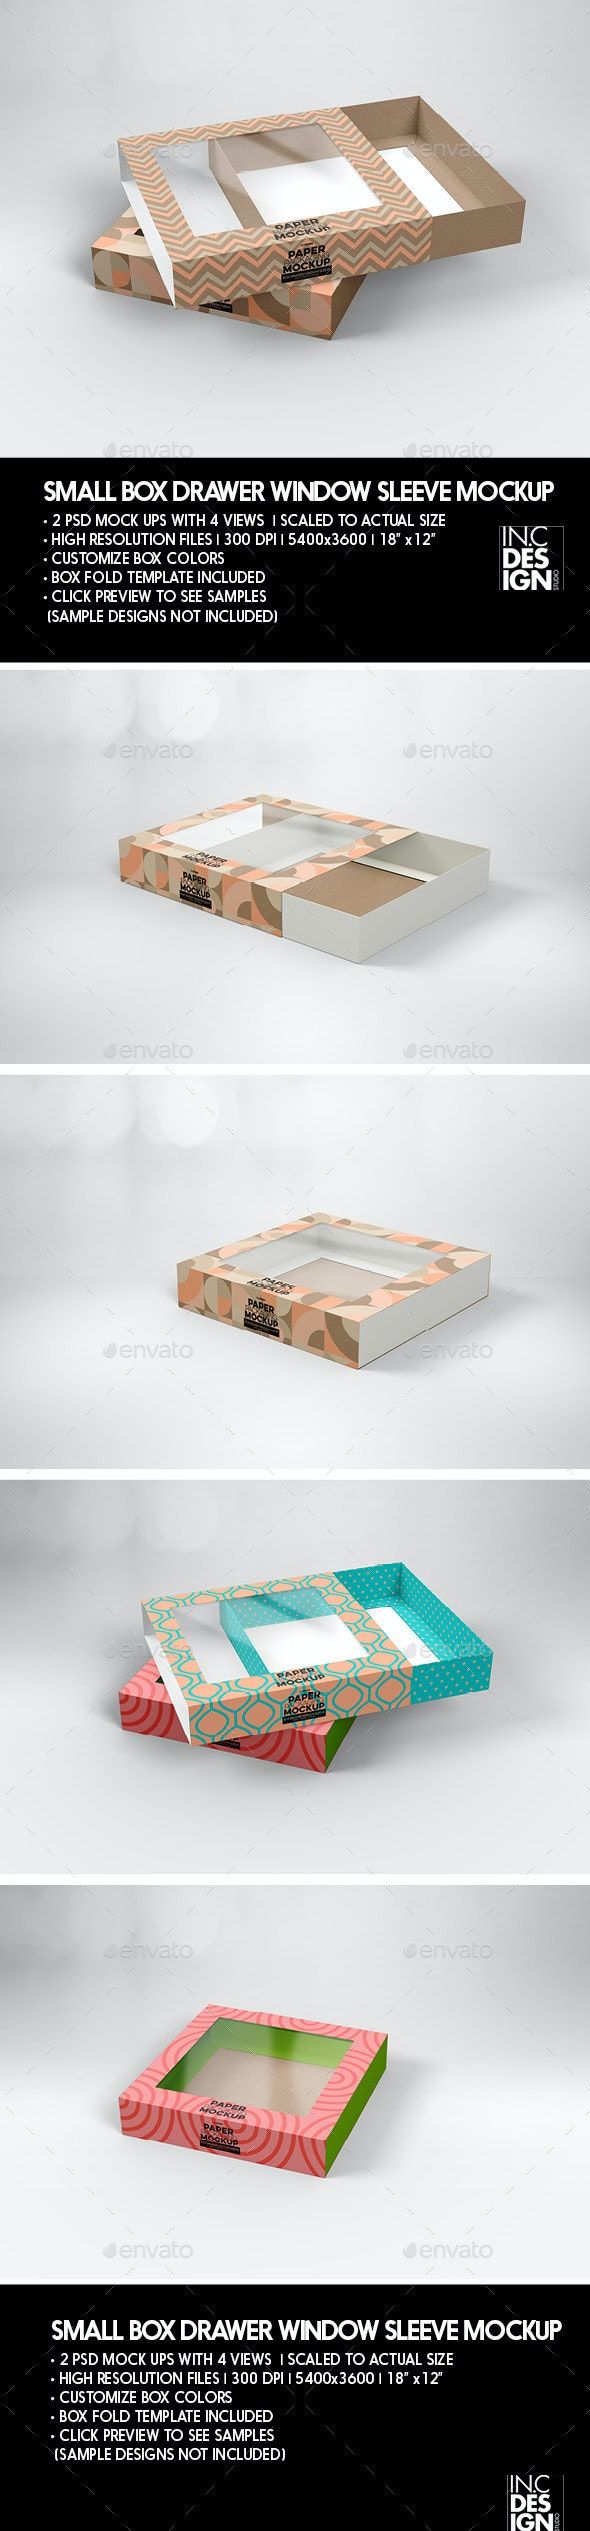 Small Box Drawer with Window Sleeve Packaging Mockup - Product Mock-Ups Graphics